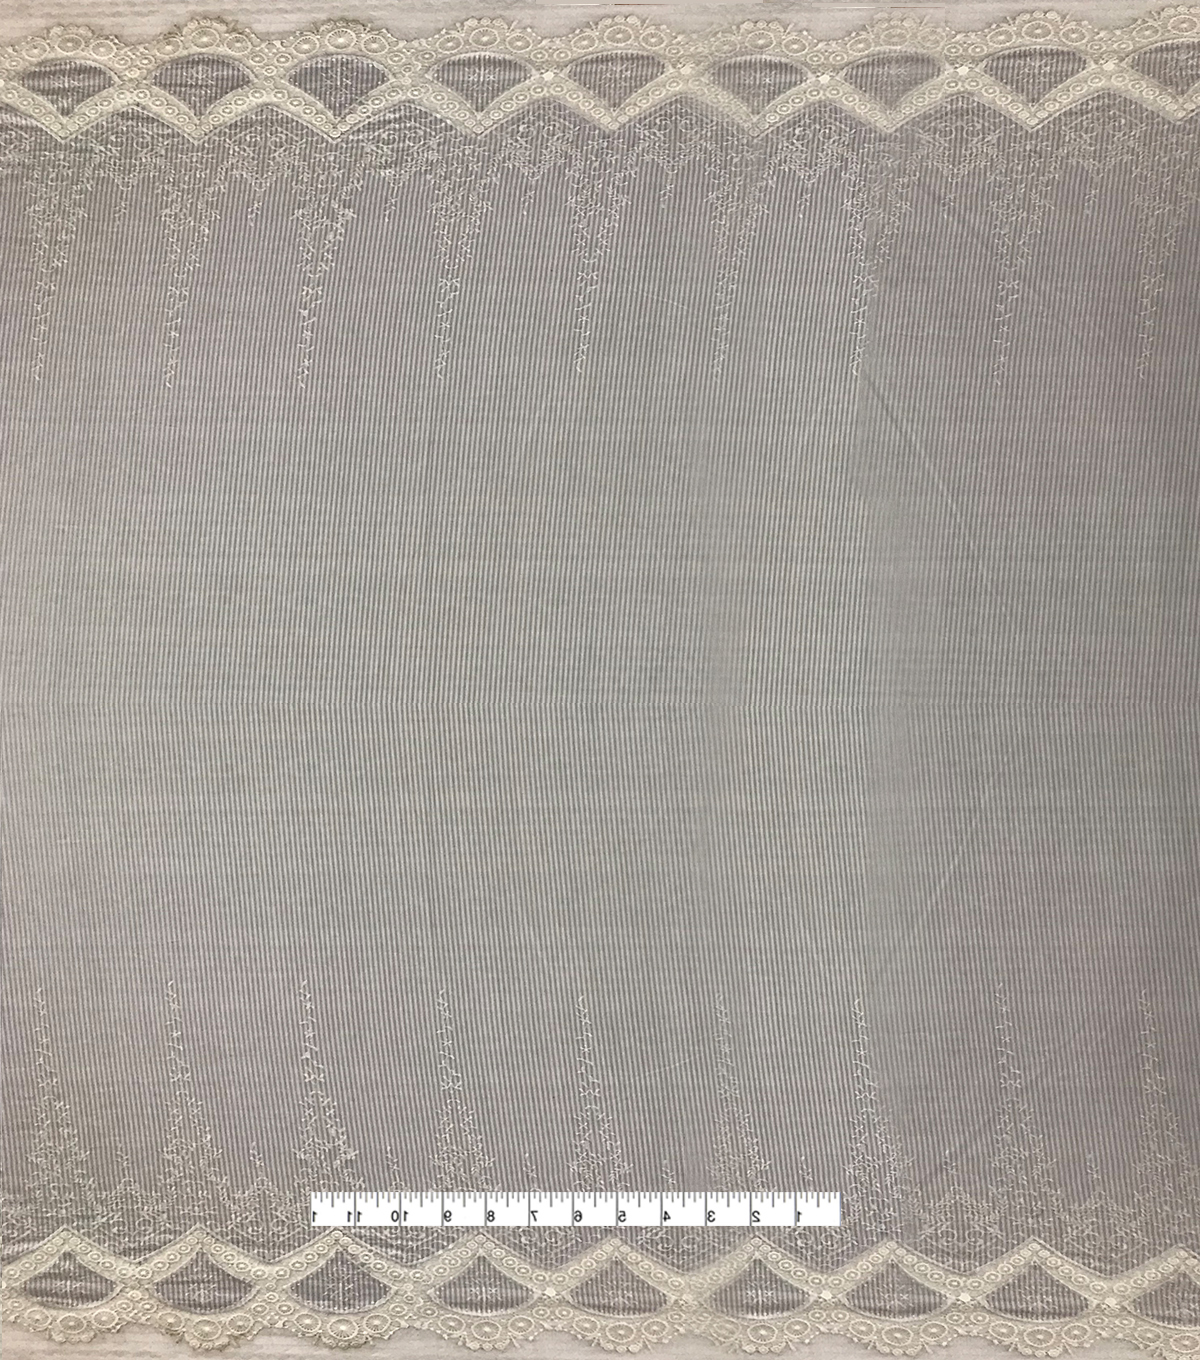 Cotton Fabric with Embroidery Border-Gray & White Stripes